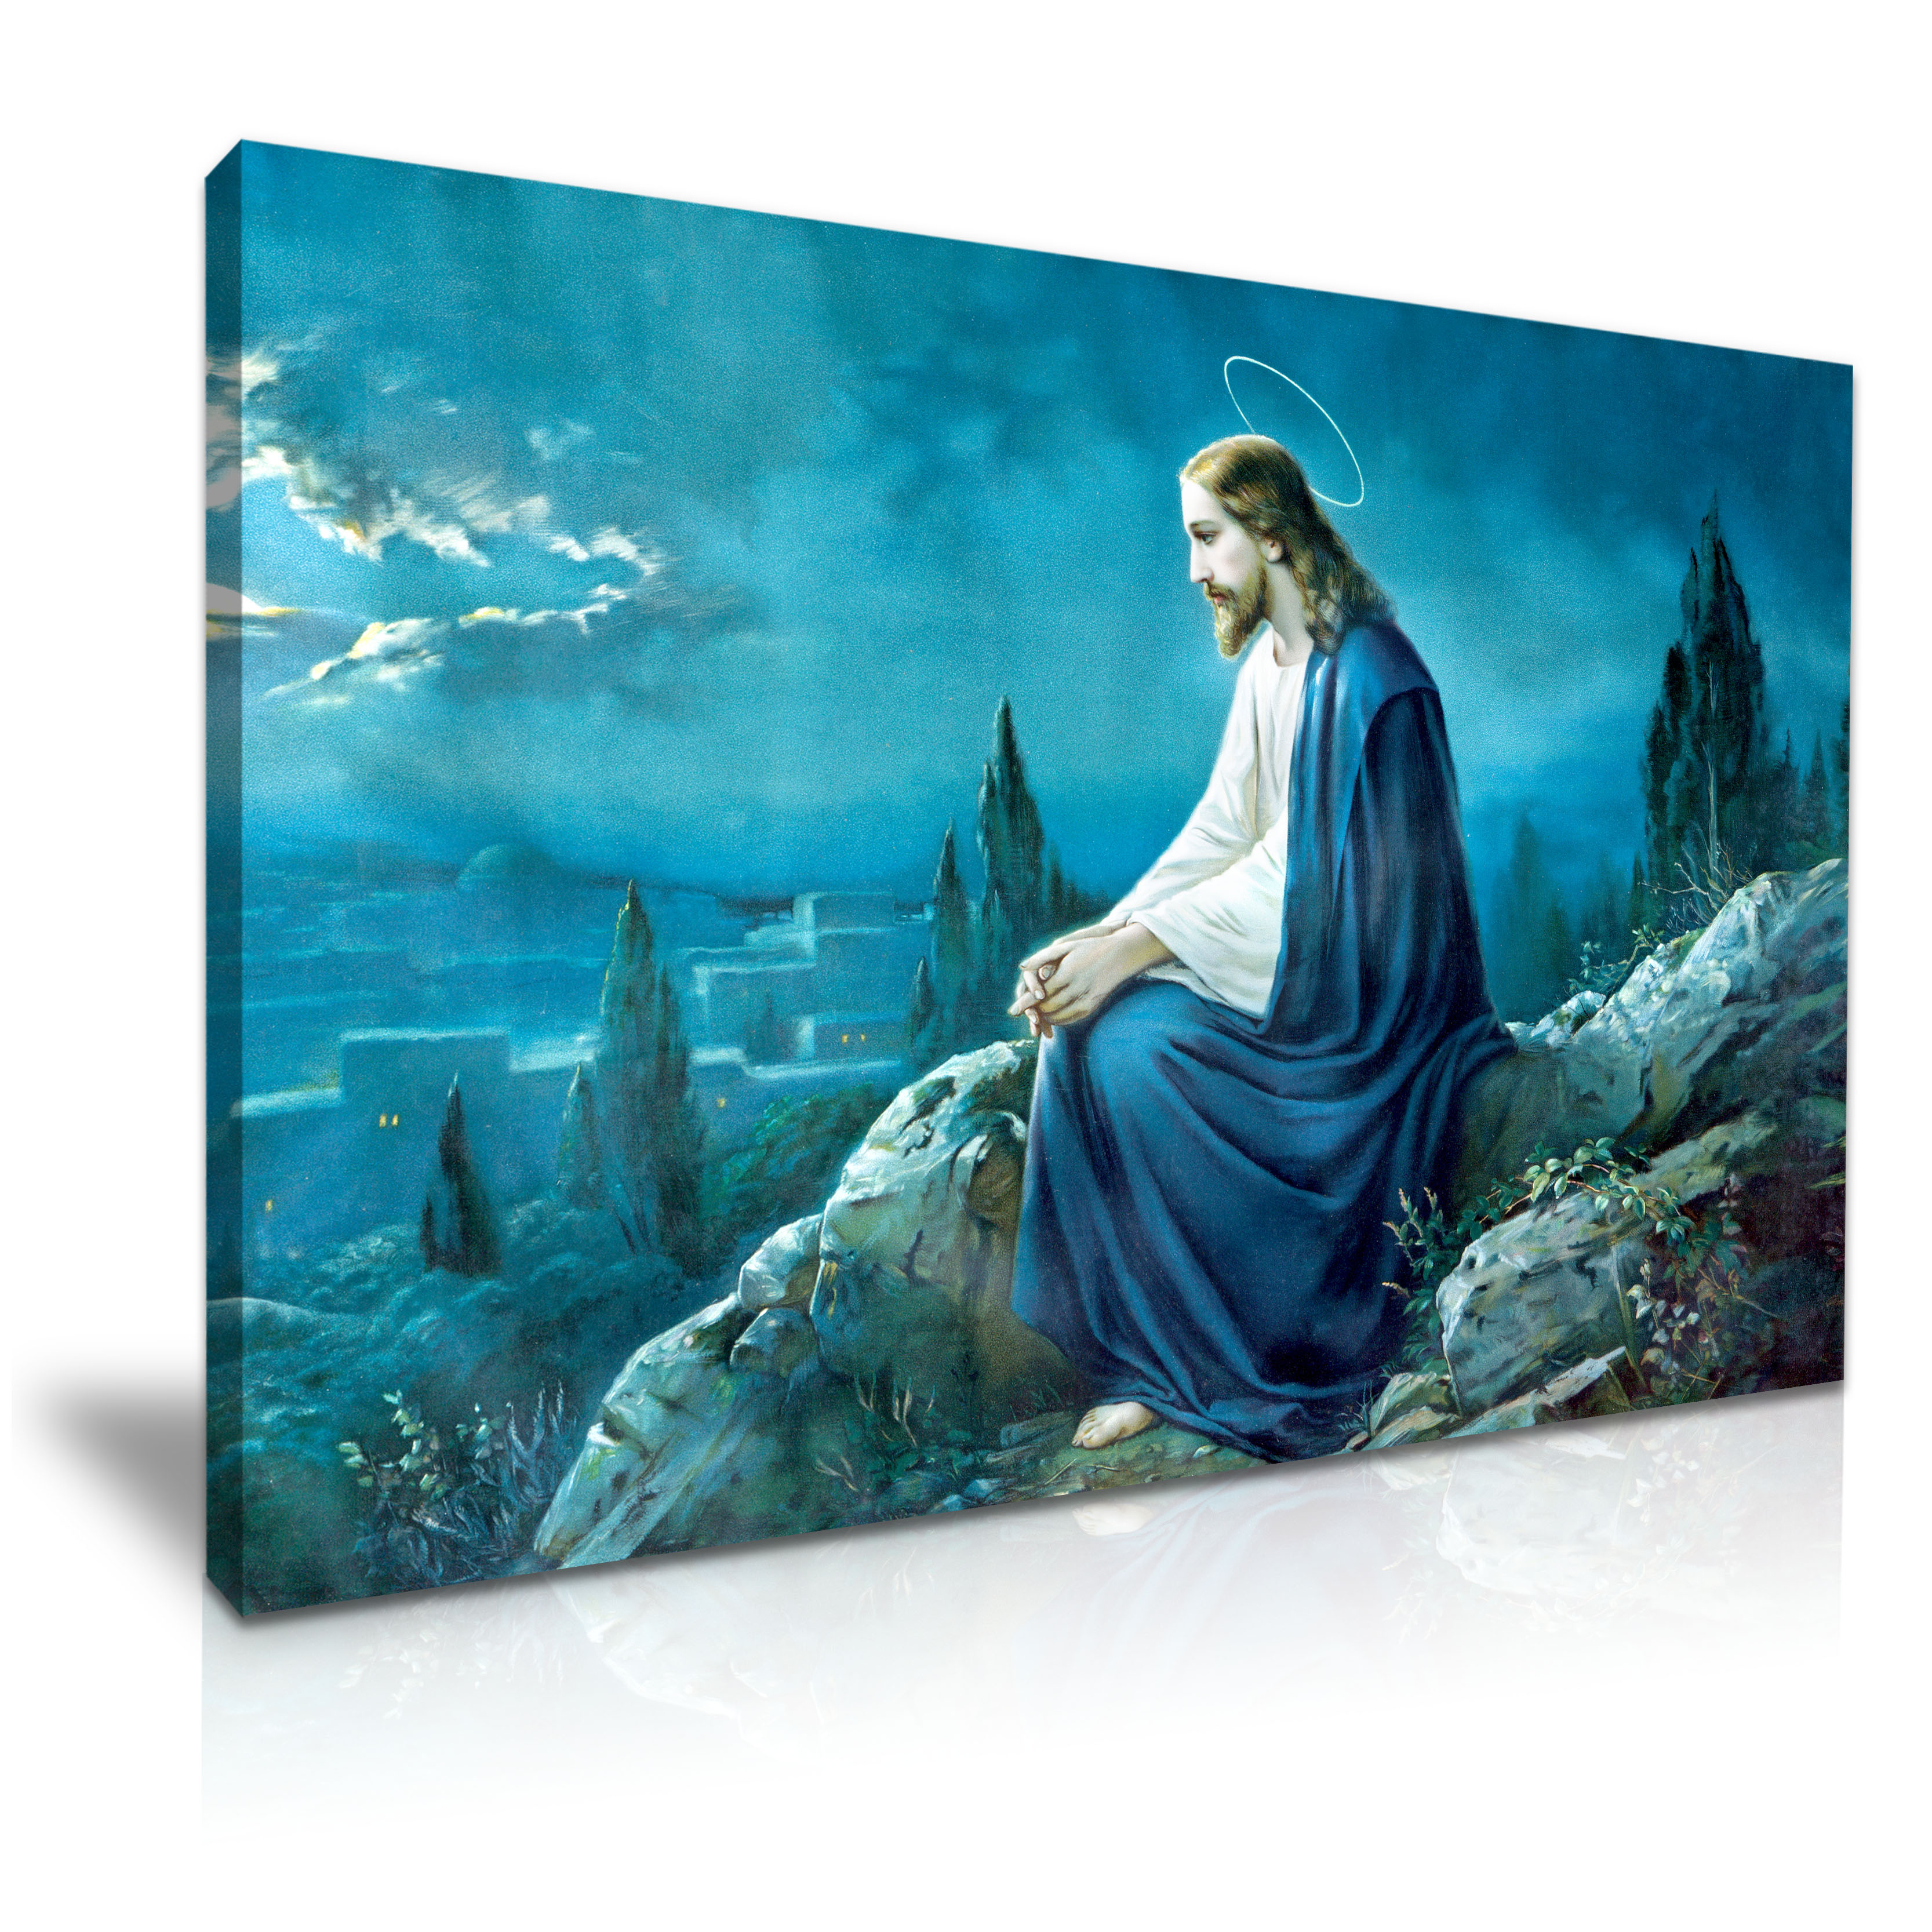 catholic singles in canvas Thrill your walls now with a stunning motivational & inspirational canvas print from the world's largest art gallery choose from thousands of motivational & inspirational canvas artworks with the option to print on canvas, acrylic, wood or museum quality paper.